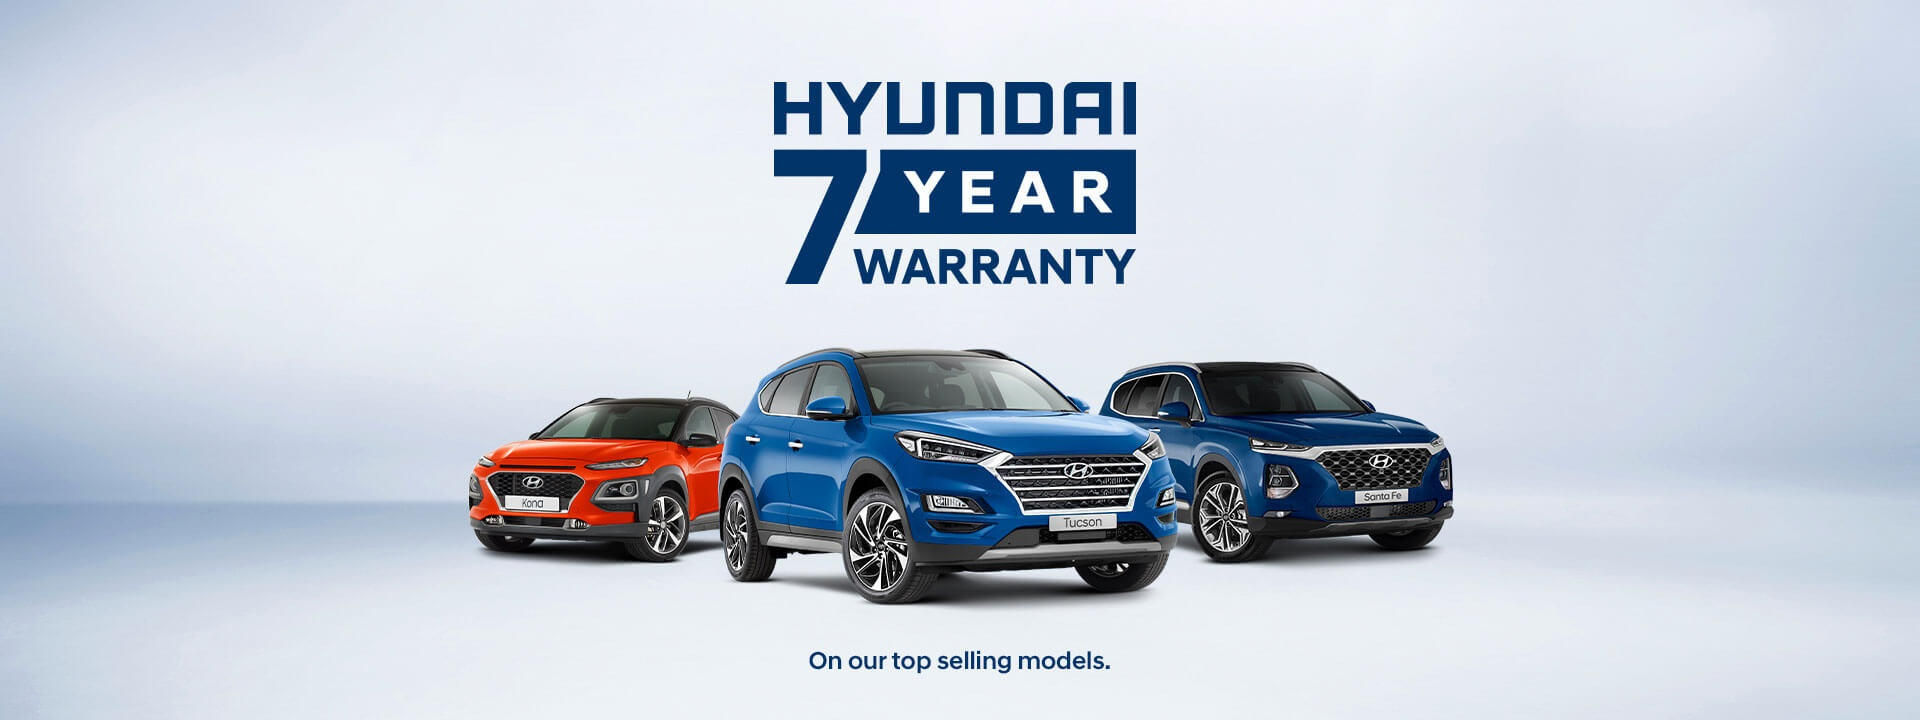 Hyundai 7 Year Warranty